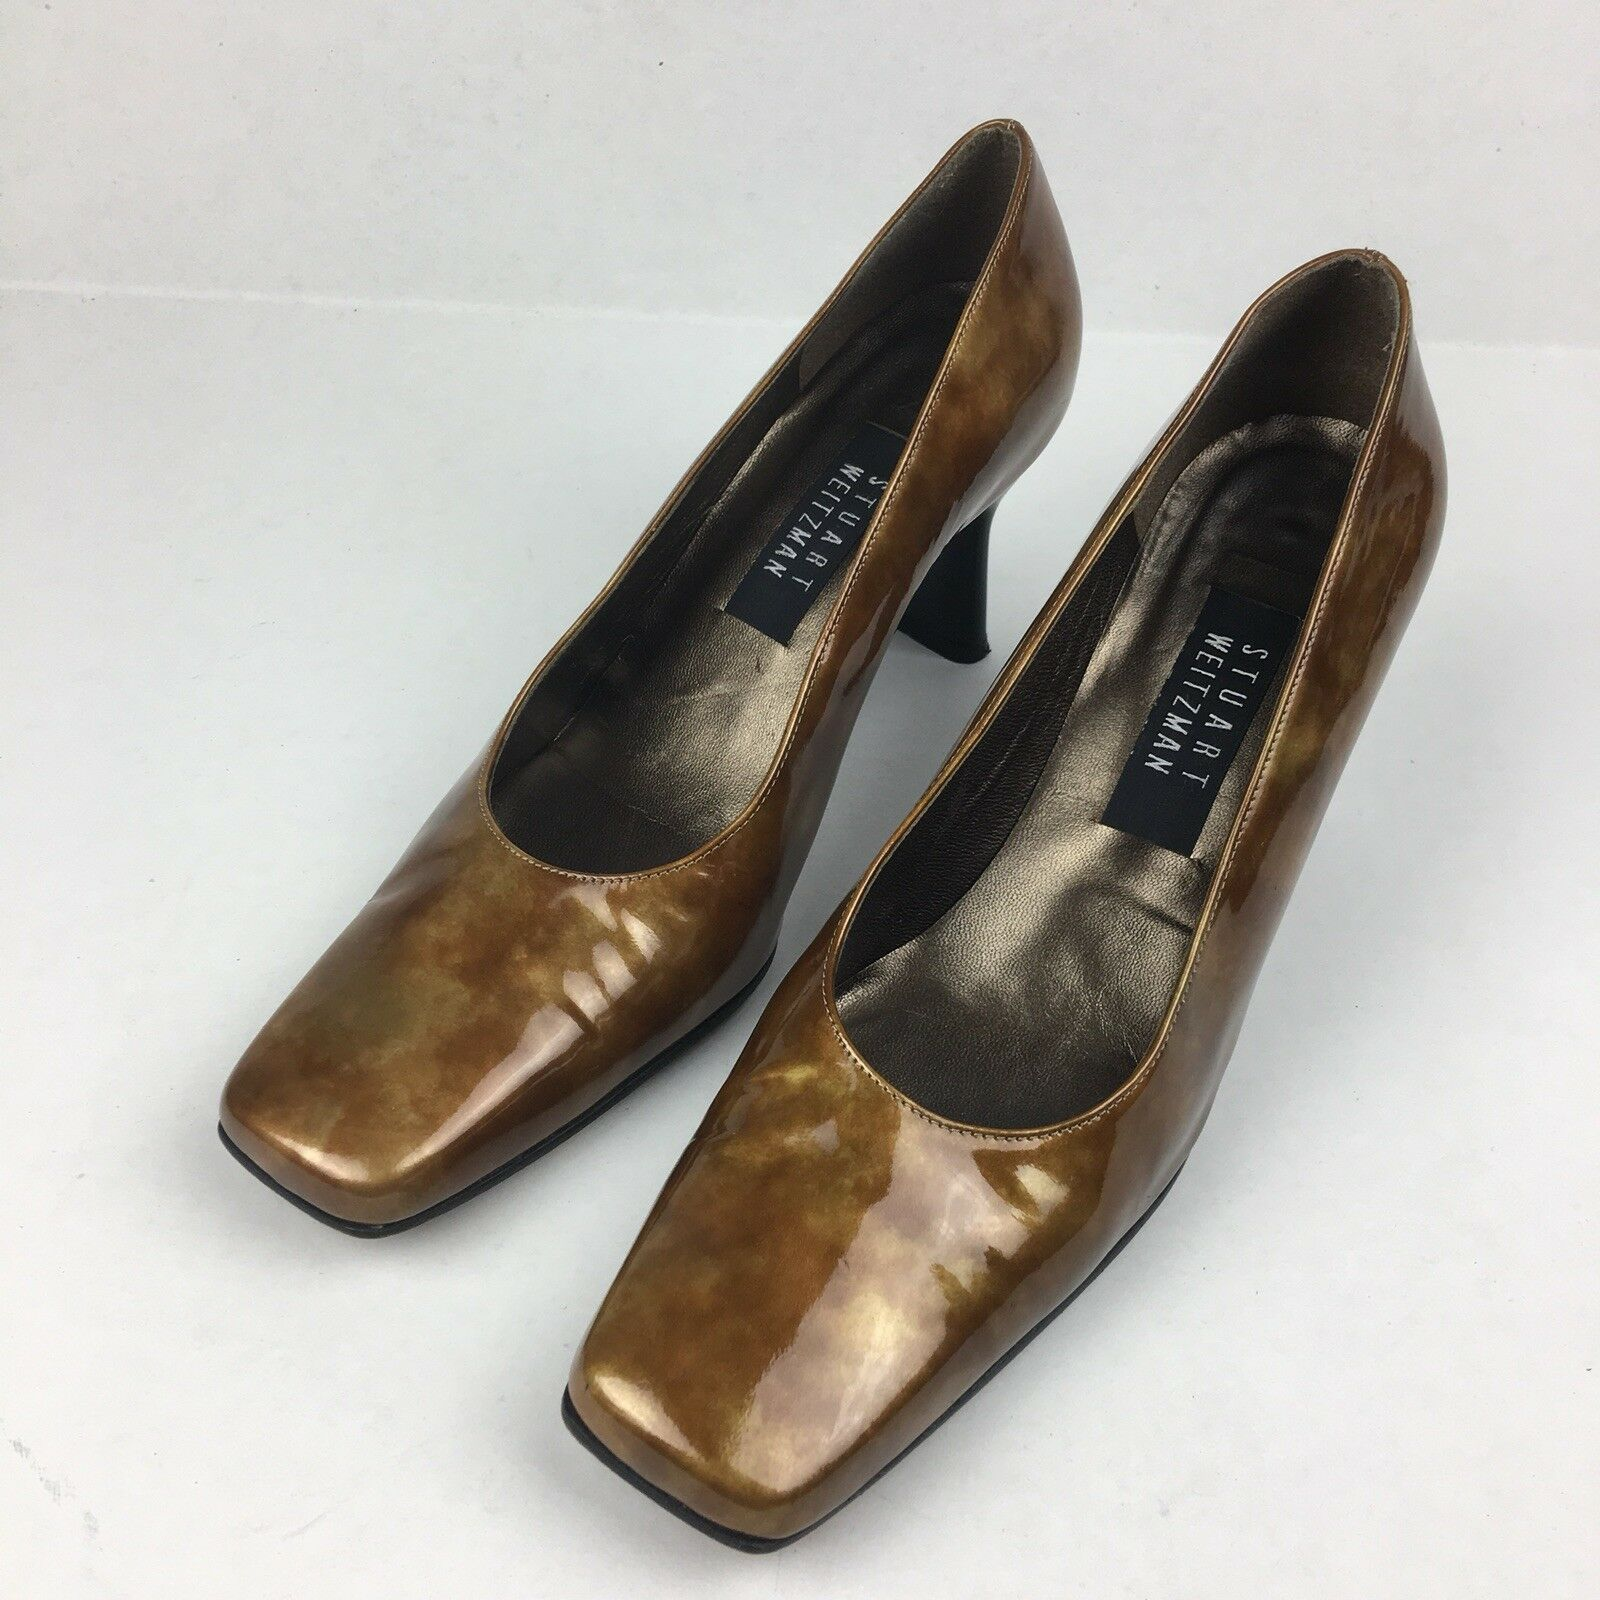 STUART WEITZMAN Bronze Gold Patent Pumps Classic Heels Leather US Size 8.5 B